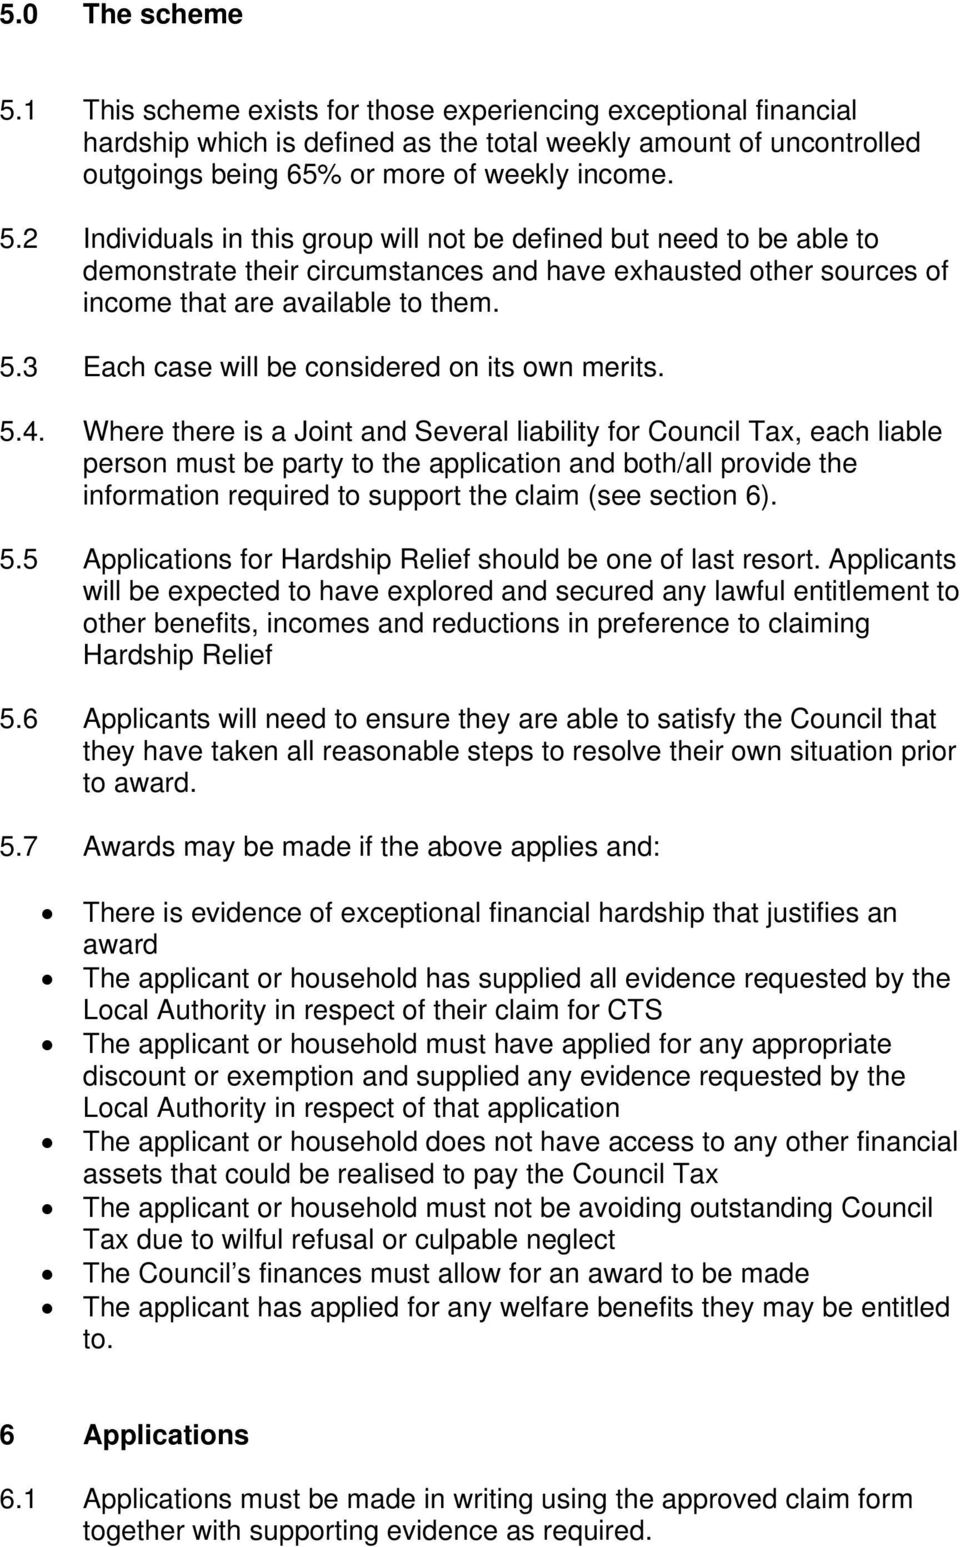 Where there is a Joint and Several liability for Council Tax, each liable person must be party to the application and both/all provide the information required to support the claim (see section 6). 5.